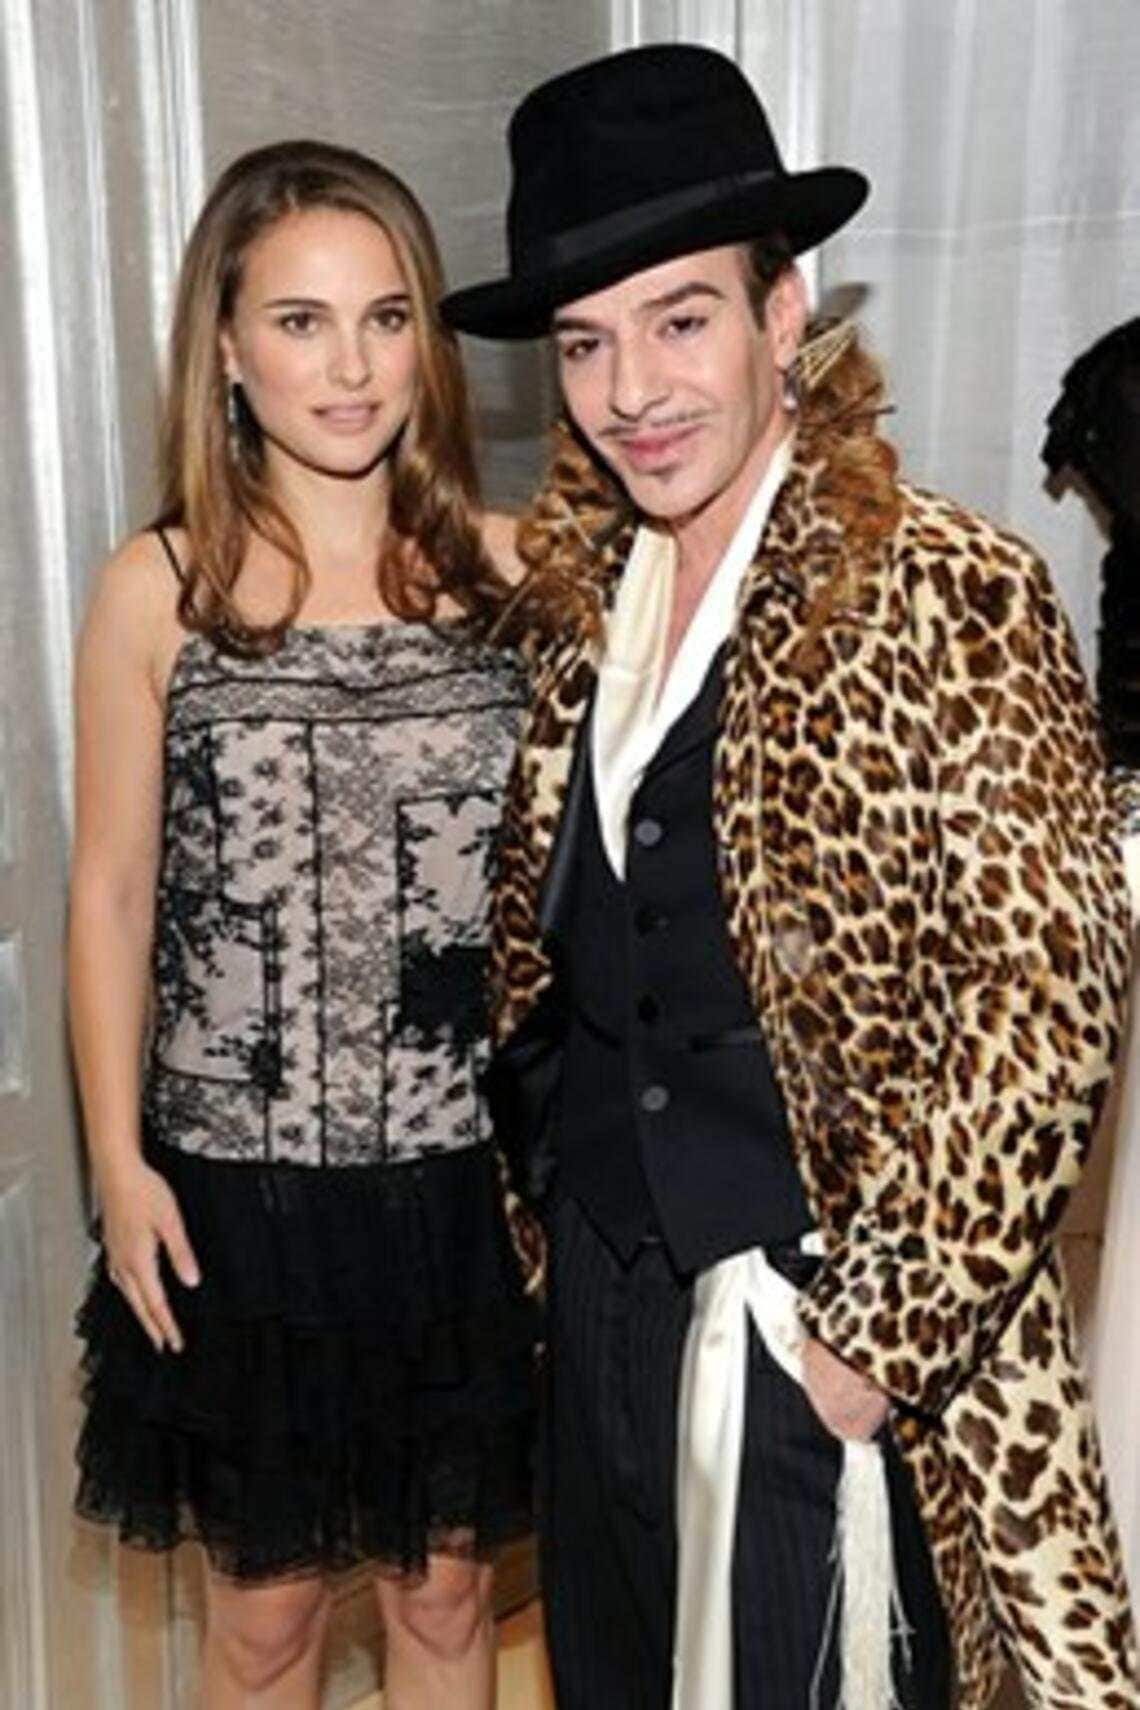 """Galliano mit der Jüdin Natalie Portman, Gesicht für's Parfüm """"Miss Cherie Dior"""". Sie äusserte sich so: «I am deeply shocked and disgusted by the video of John Galliano's comments that surfaced today. In light of this video, and as an individual who is proud to be Jewish, I will not be associated with Mr. Galliano in any way."""